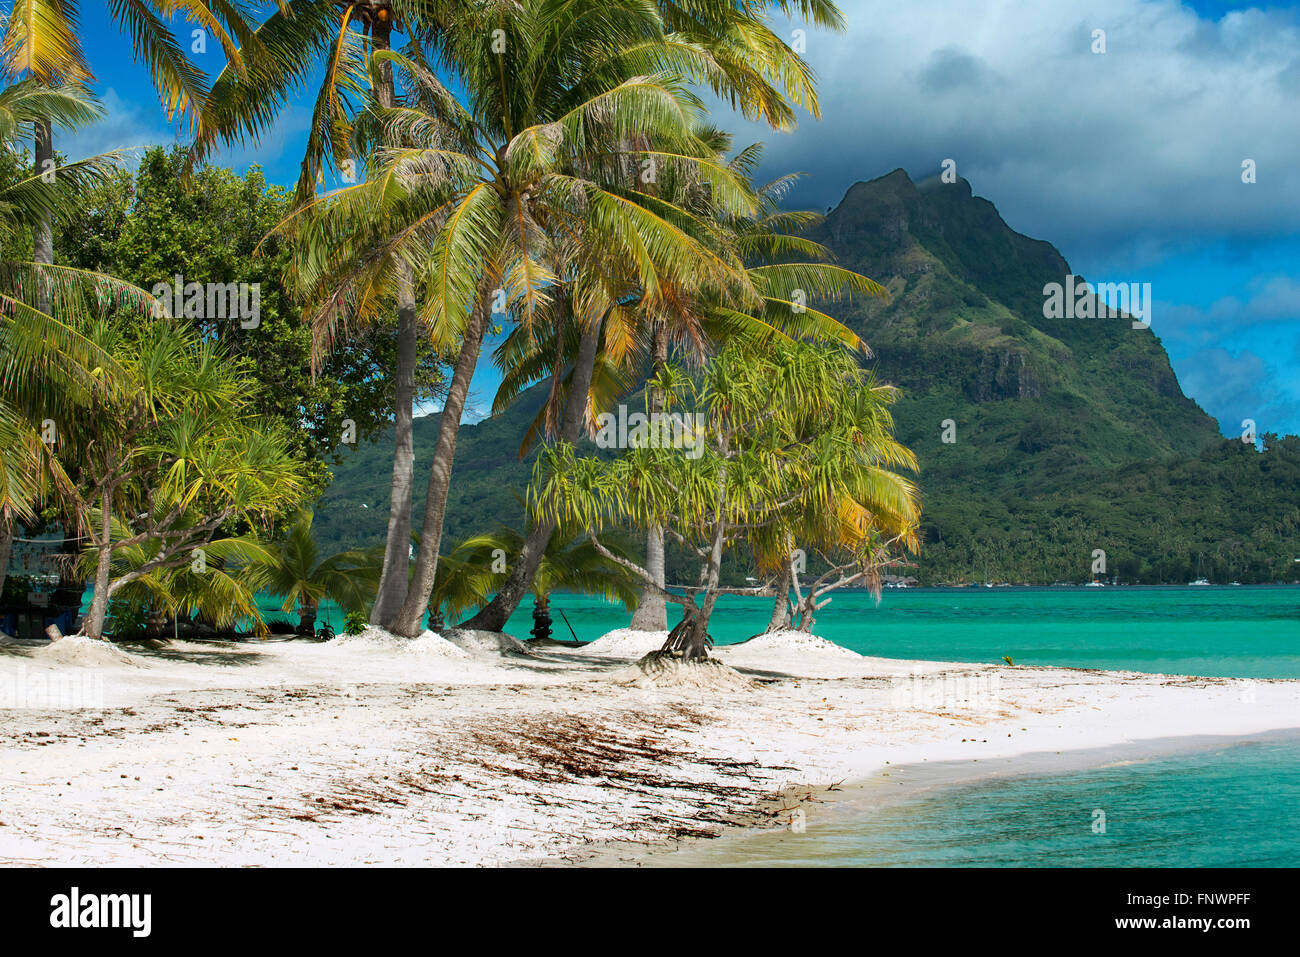 Beach of motu Tapu, a little islet in the lagoon of Bora Bora, Society Islands, French Polynesia, South Pacific. - Stock Image